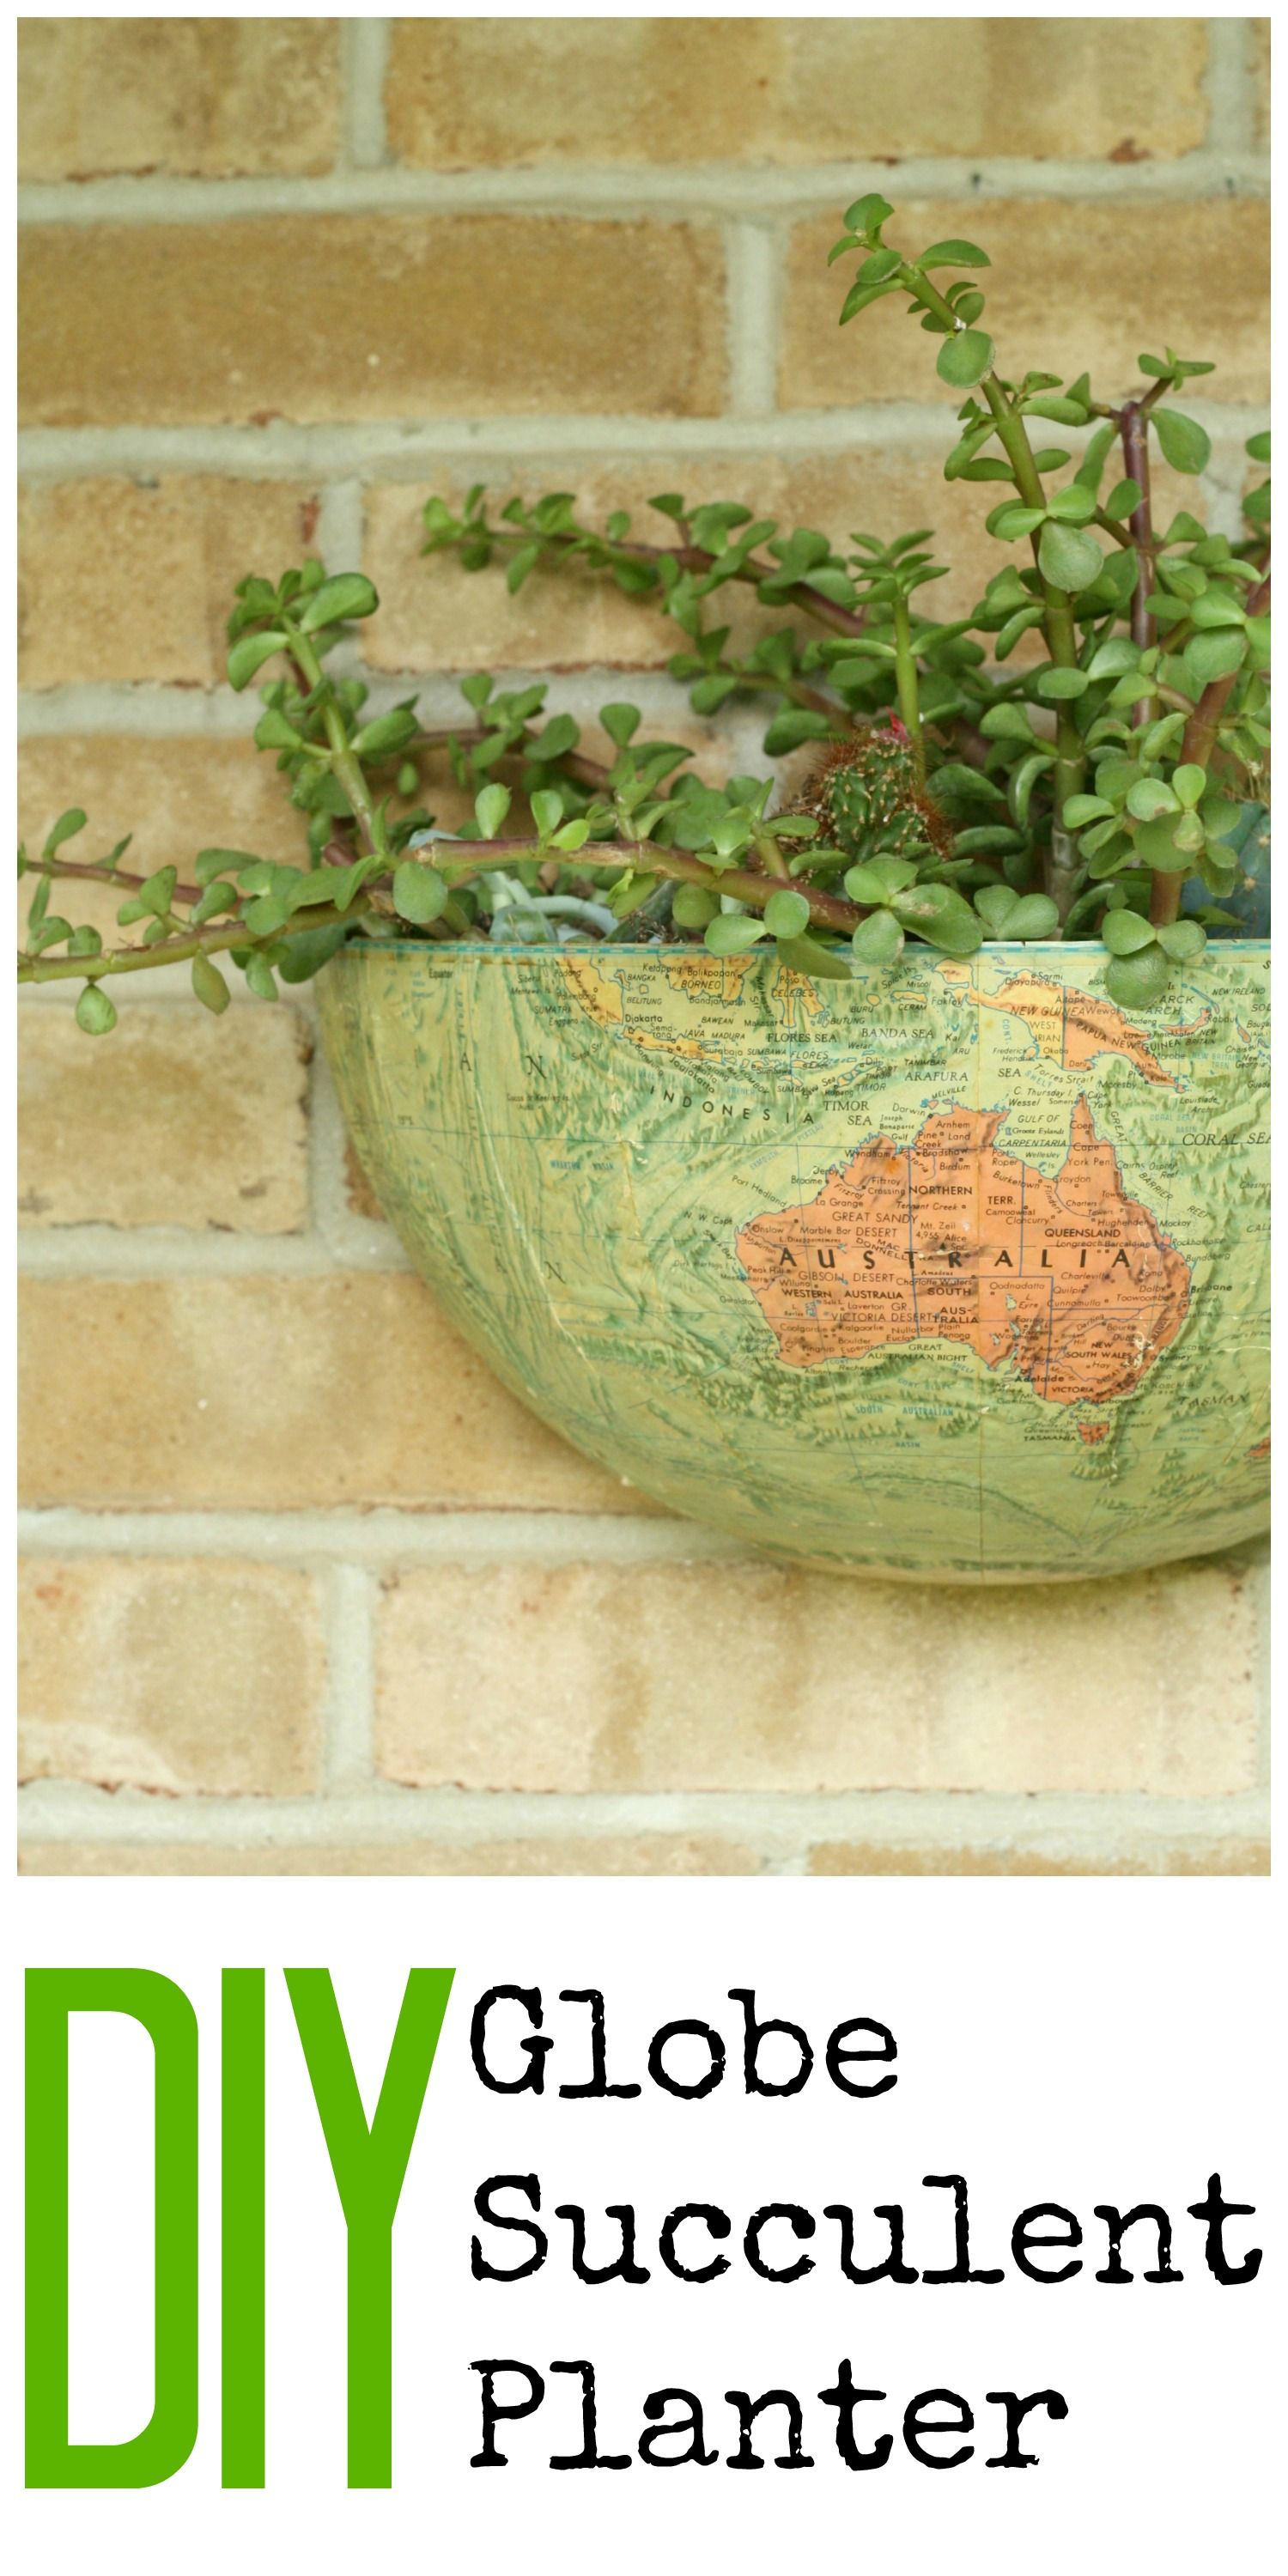 DIY Vintage Globe Succulent Planter | More Planters, Gardens and ...